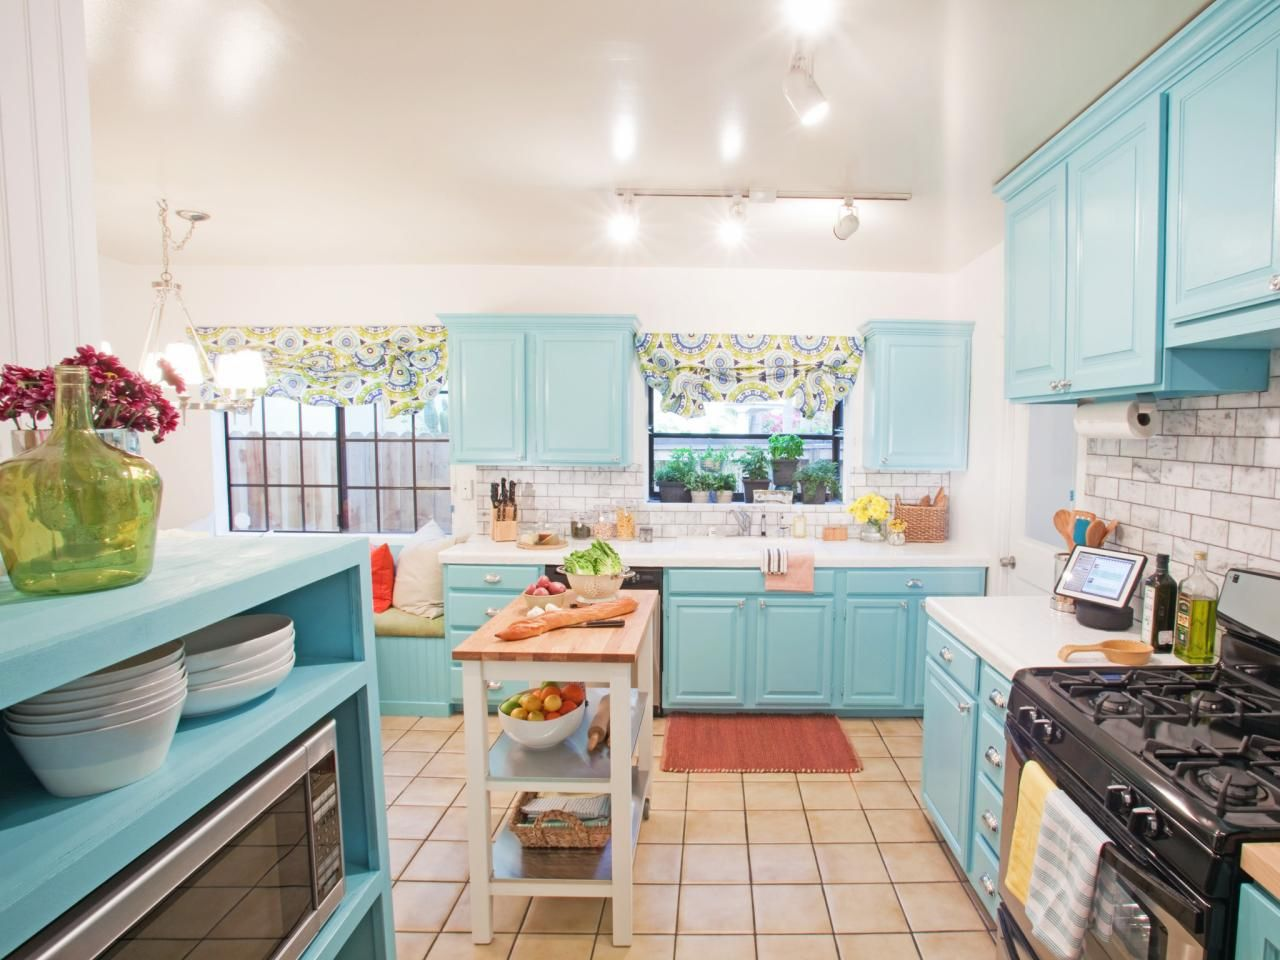 New Kitchen Paint Colors - Small Kitchen Remodel Ideas On A Budget ...